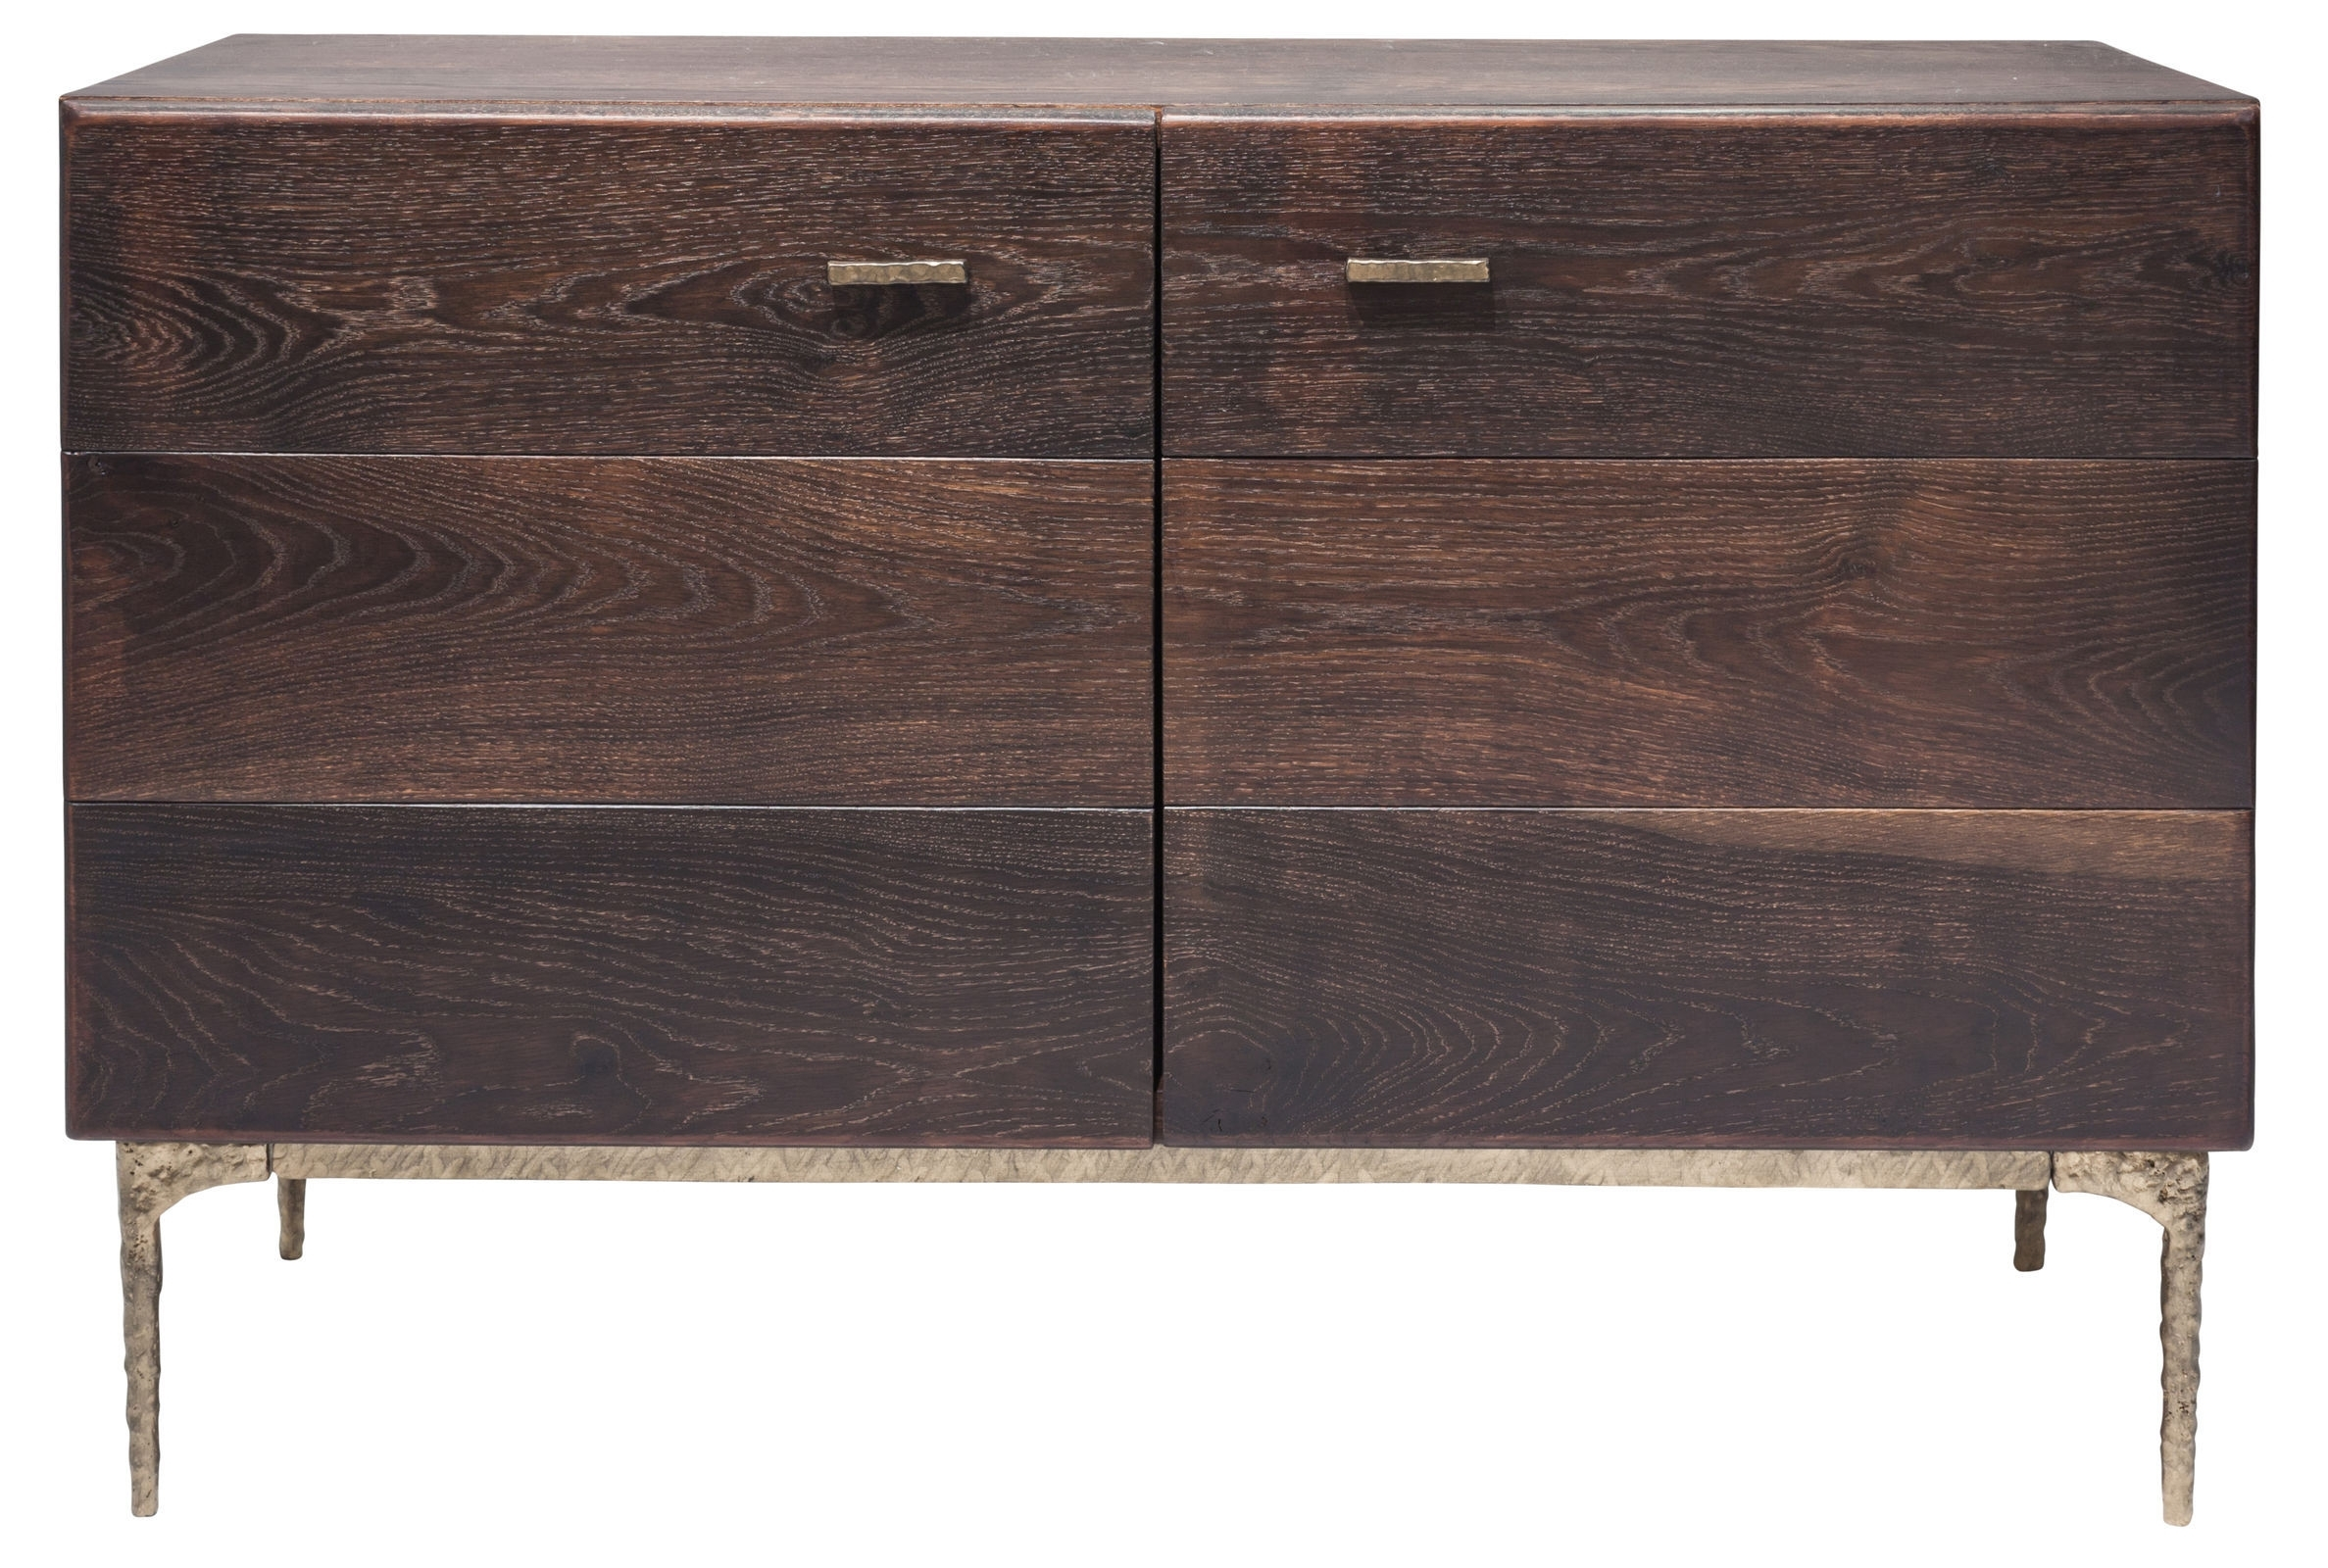 Kulu Sideboard Buffet In Seared Oak And Gilded Bronze Cast Iron Legs Intended For 2018 Black Oak Wood And Wrought Iron Sideboards (#11 of 20)